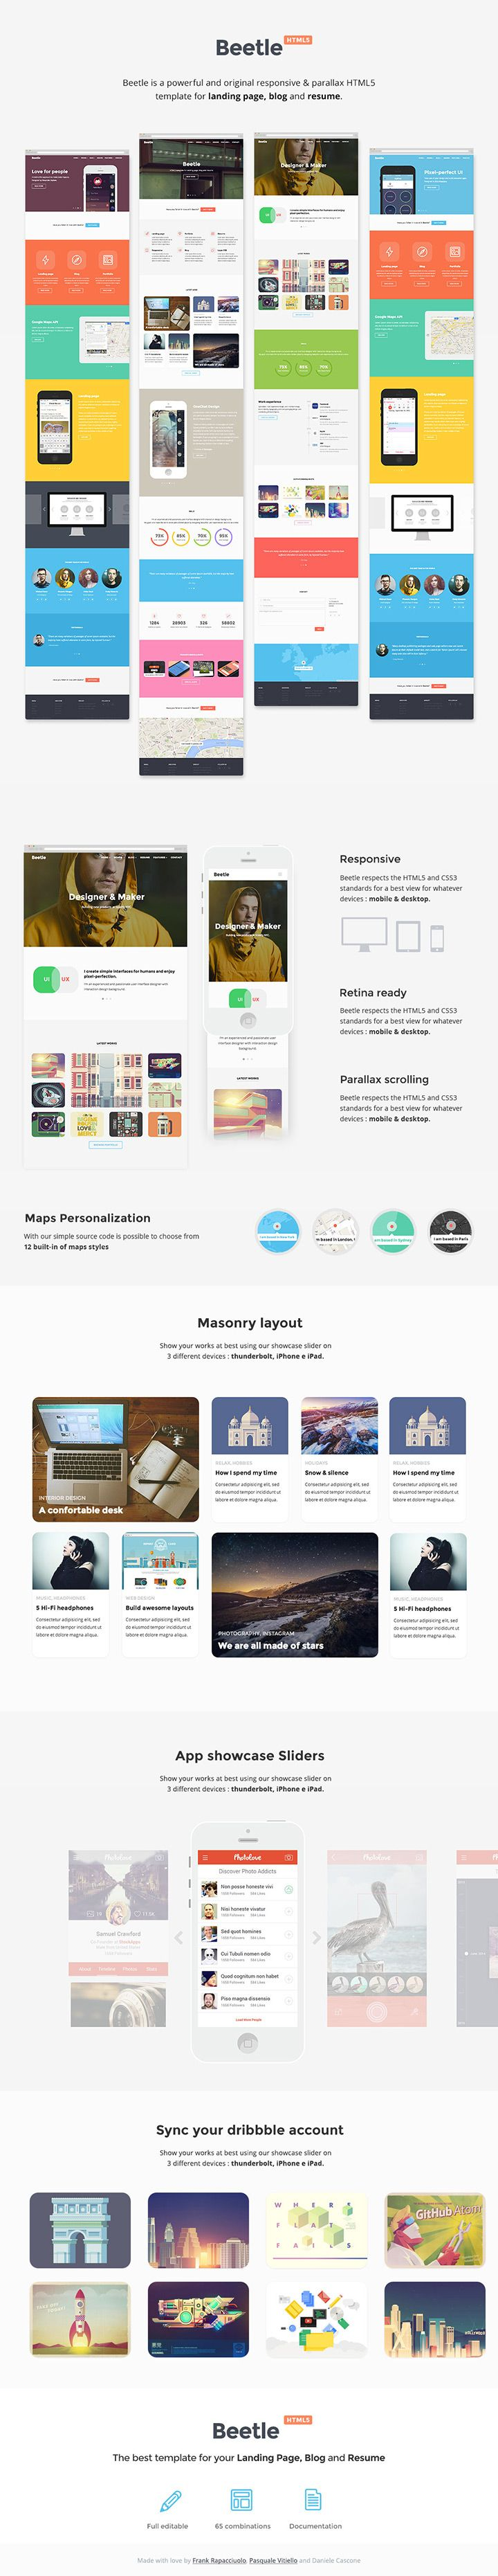 Beetle Html5 Template For Designers Freebiesbug Html5 Templates Luxury Business Cards Visiting Card Design